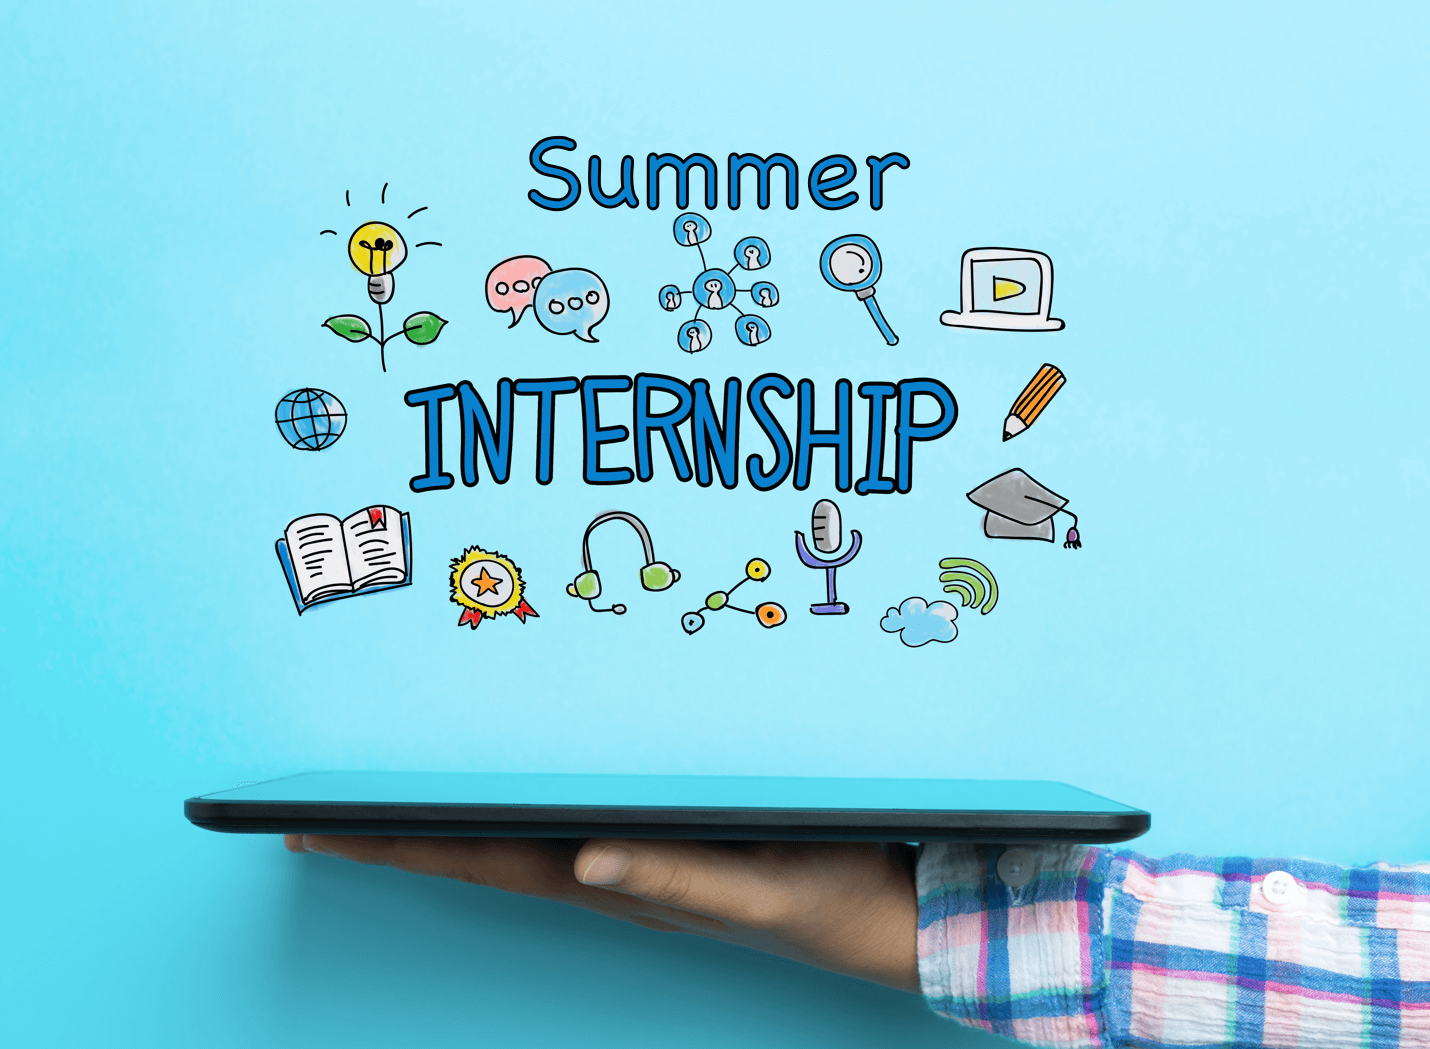 How to apply for summer interns?